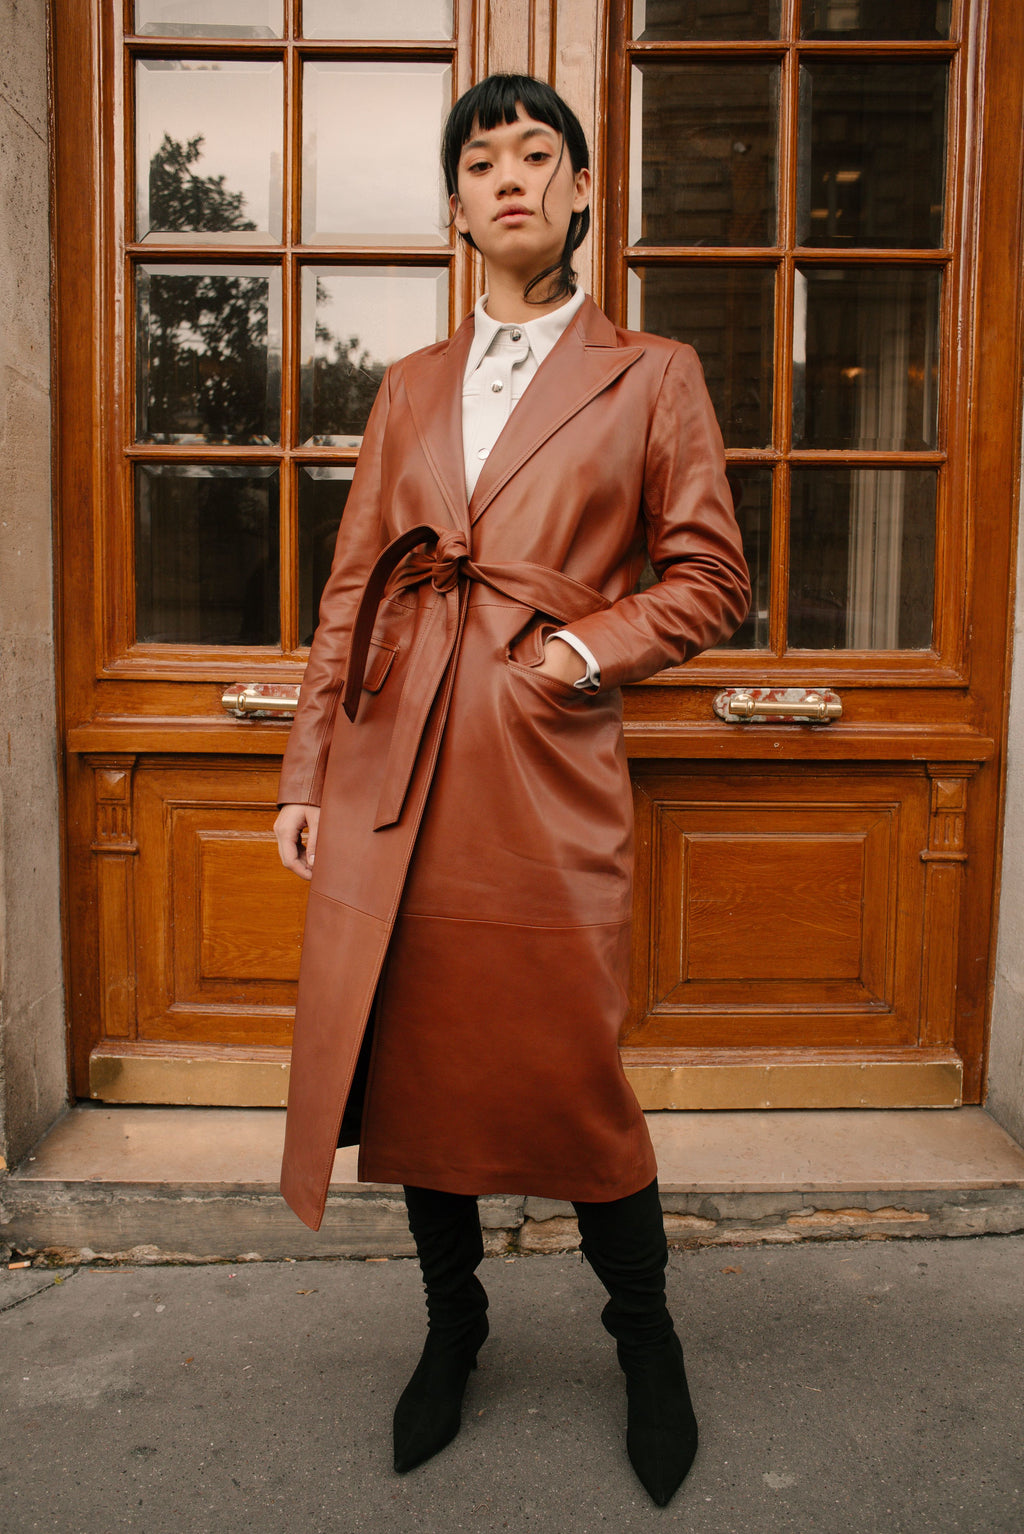 The long leather trench coat